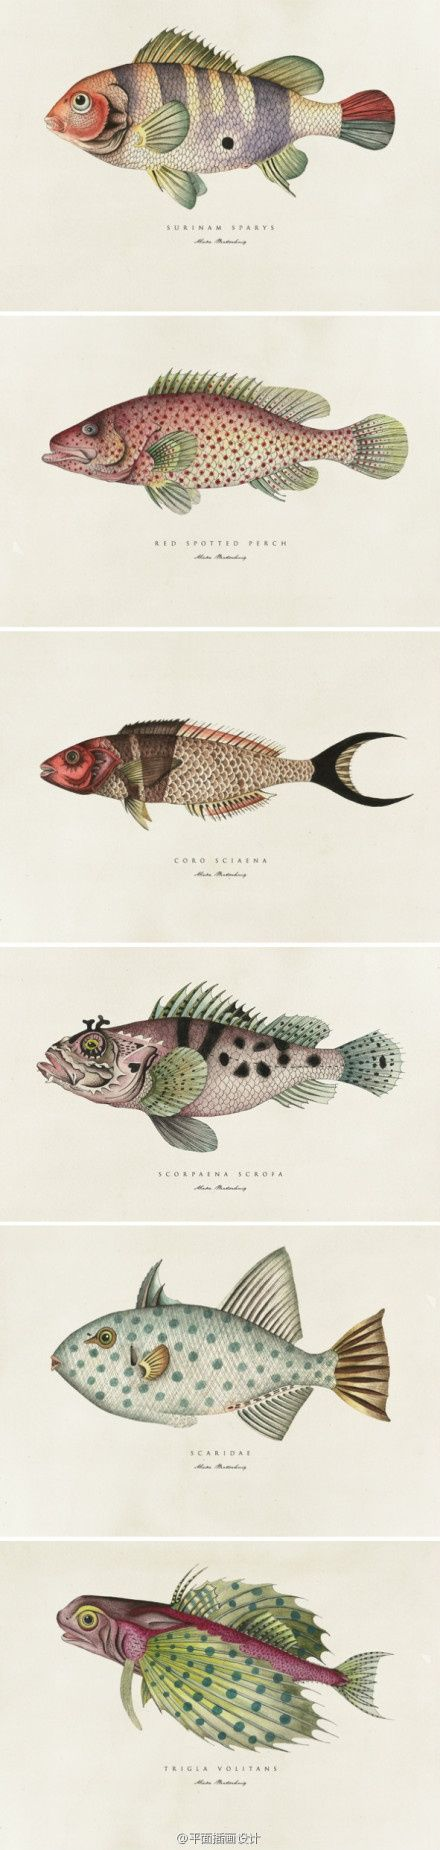 166 best fish art images on pinterest fish art fishing and